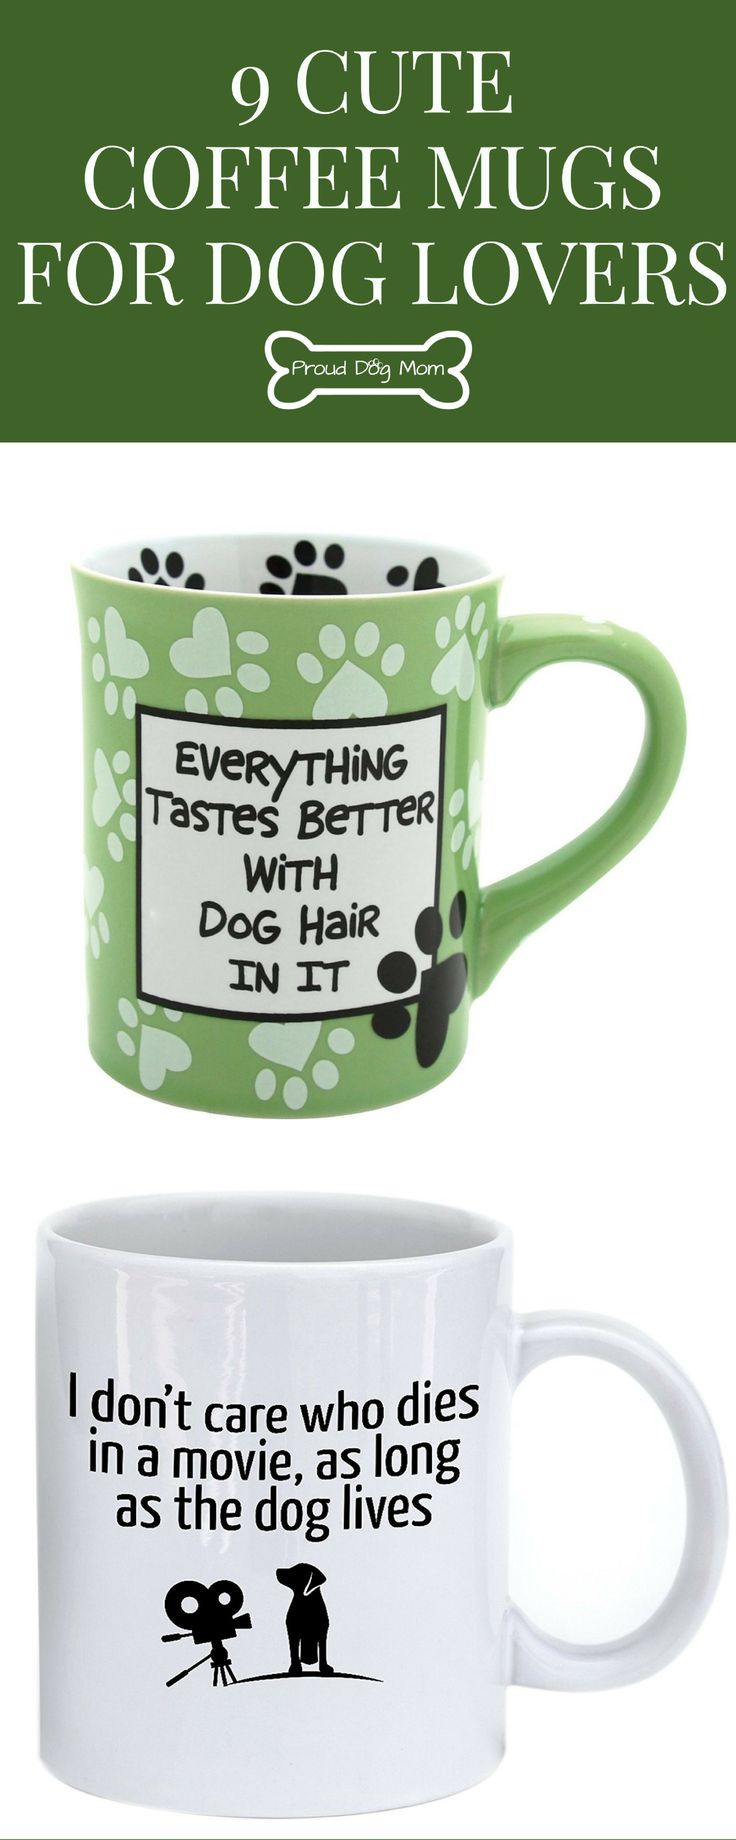 9 Cute Coffee Mugs For Dog Lovers | Dog Lover Gifts |